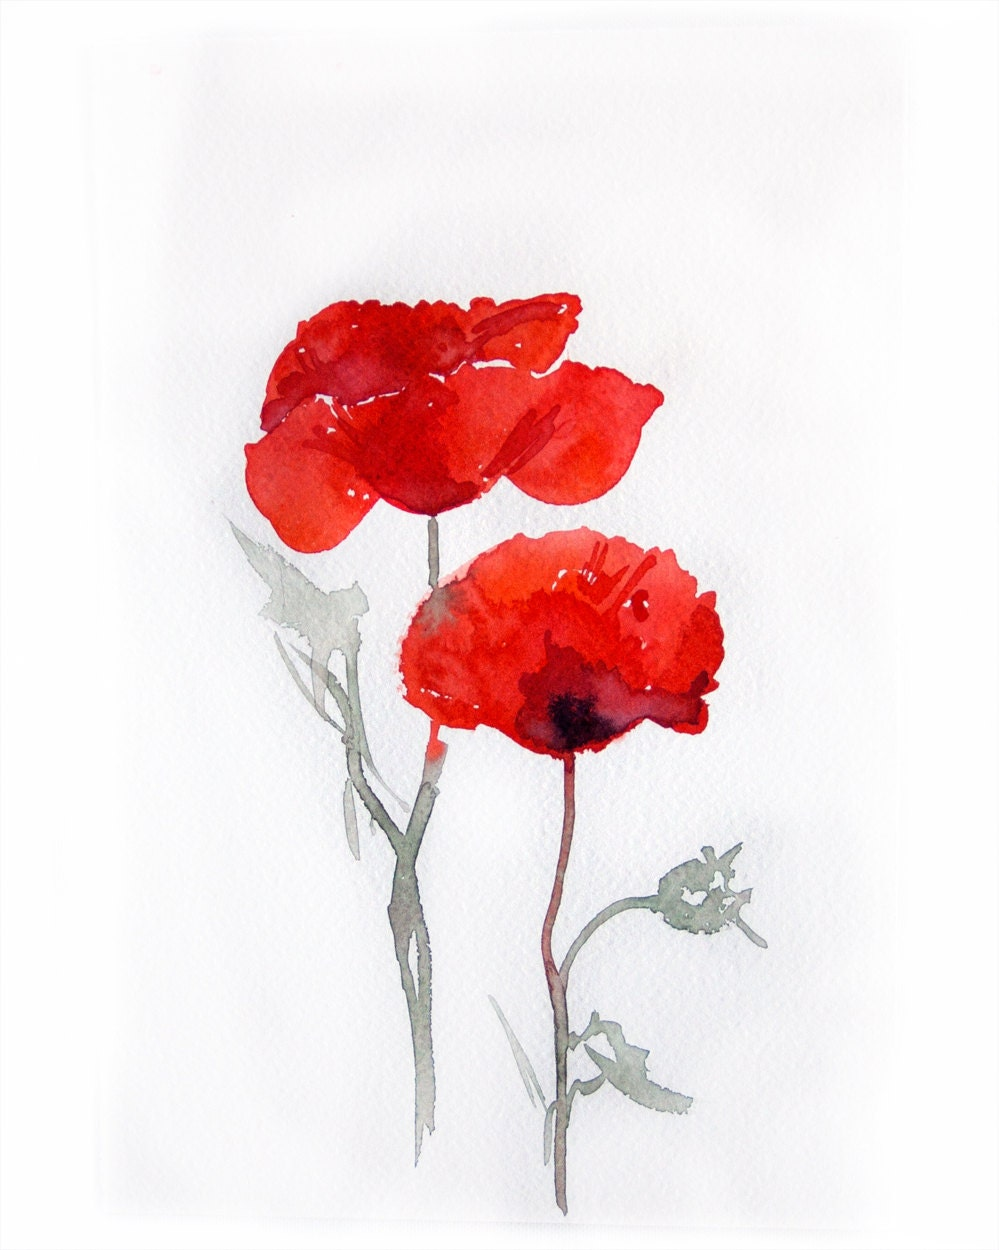 Red Poppies Watercolor Painting Painting by Joanna Szmerdt |Watercolor Poppies Pink